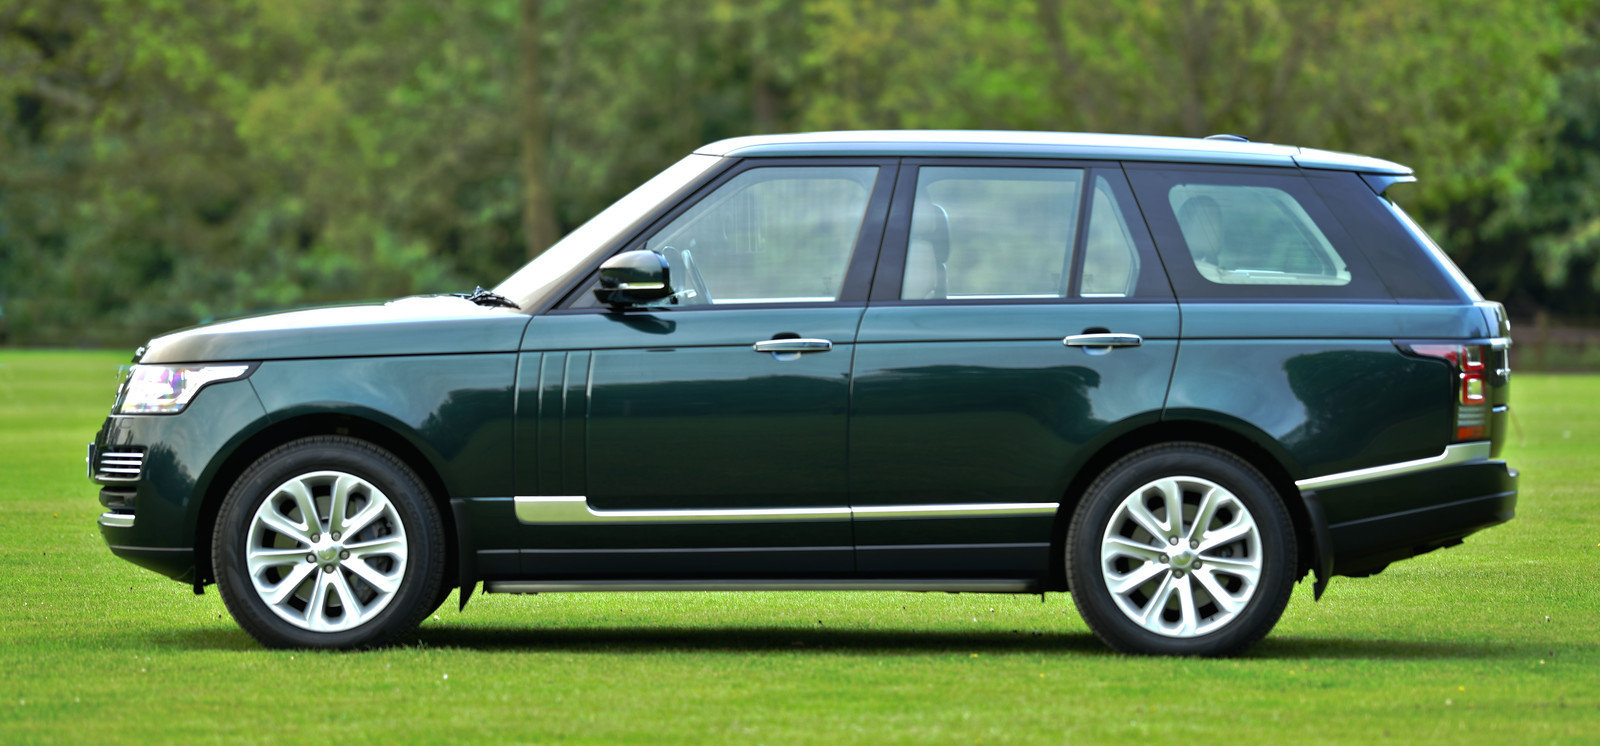 2014  LAND ROVER RANGE ROVER 4.4 SDV8 VOGUE SE 5DR AUTOMATIC SOLD (picture 3 of 6)